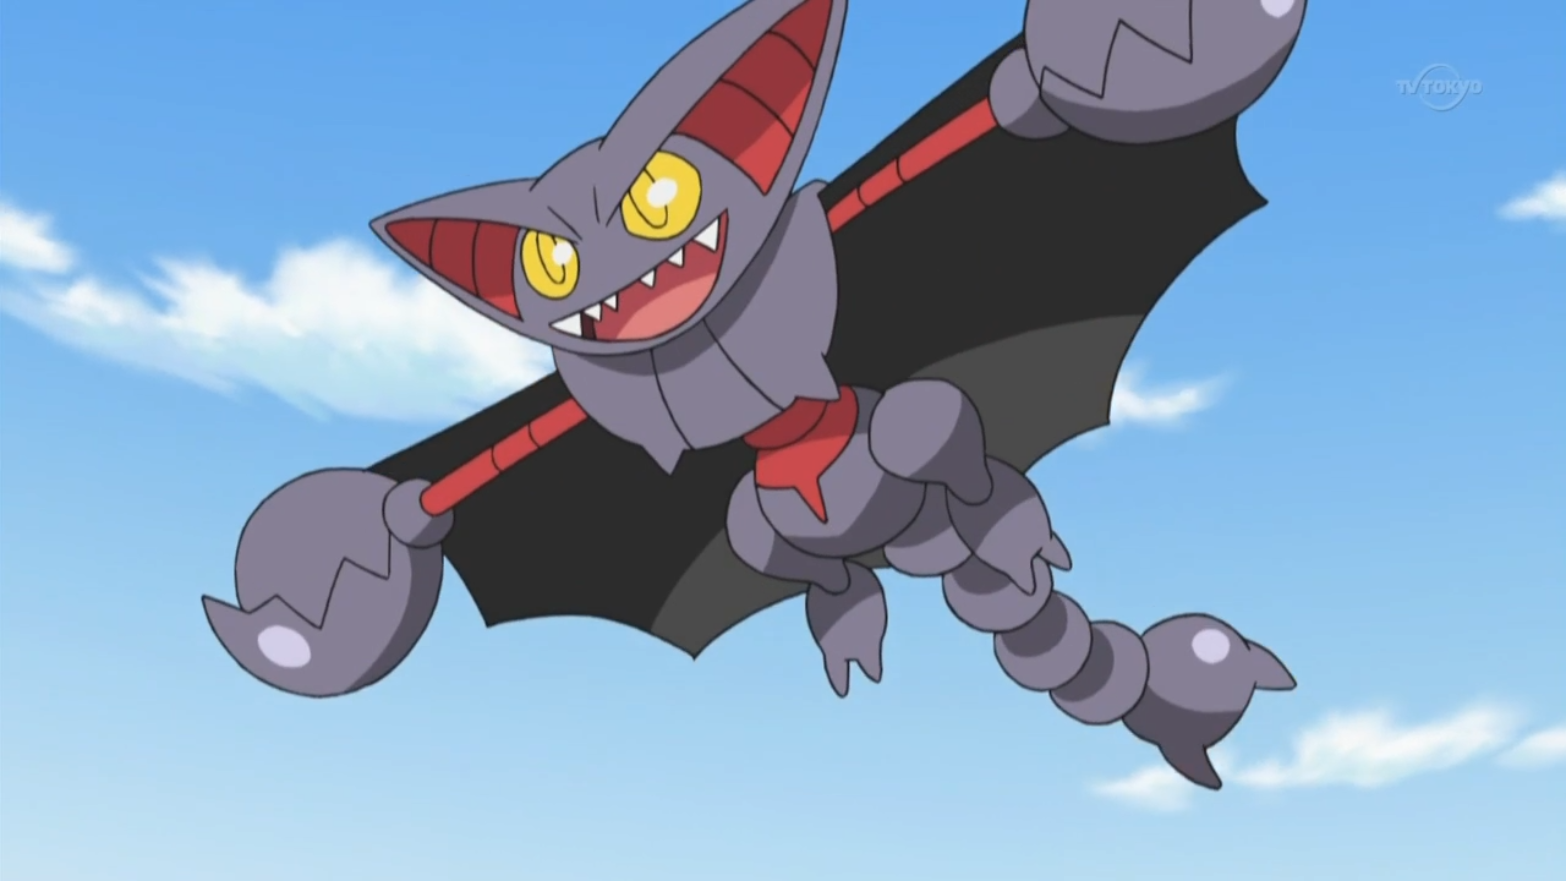 Gliscor was very determined to beat Scizor but could not , even though it learnt Giga Impact. It then resided there until Ash requested it return before his battle with Paul, in which it managed to learn Stone Edge and take down Drapion.